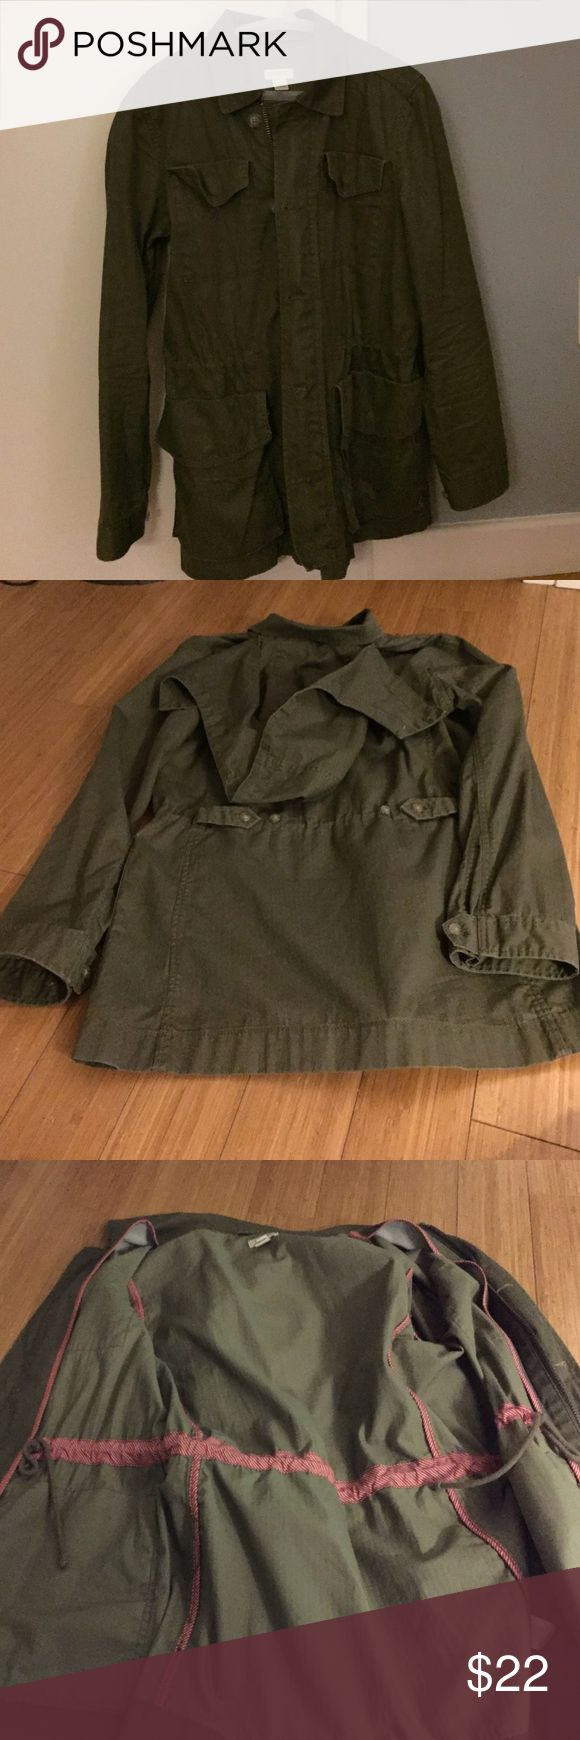 J.Crew women's Utility Jacket 100% cotton size small jacket. Removable hood. Great condition, no noticeable wear to speak of. 2 large button pockets on both size. Zipper and button closure. Worn gently and infrequently. J. Crew Jackets & Coats Utility Jackets